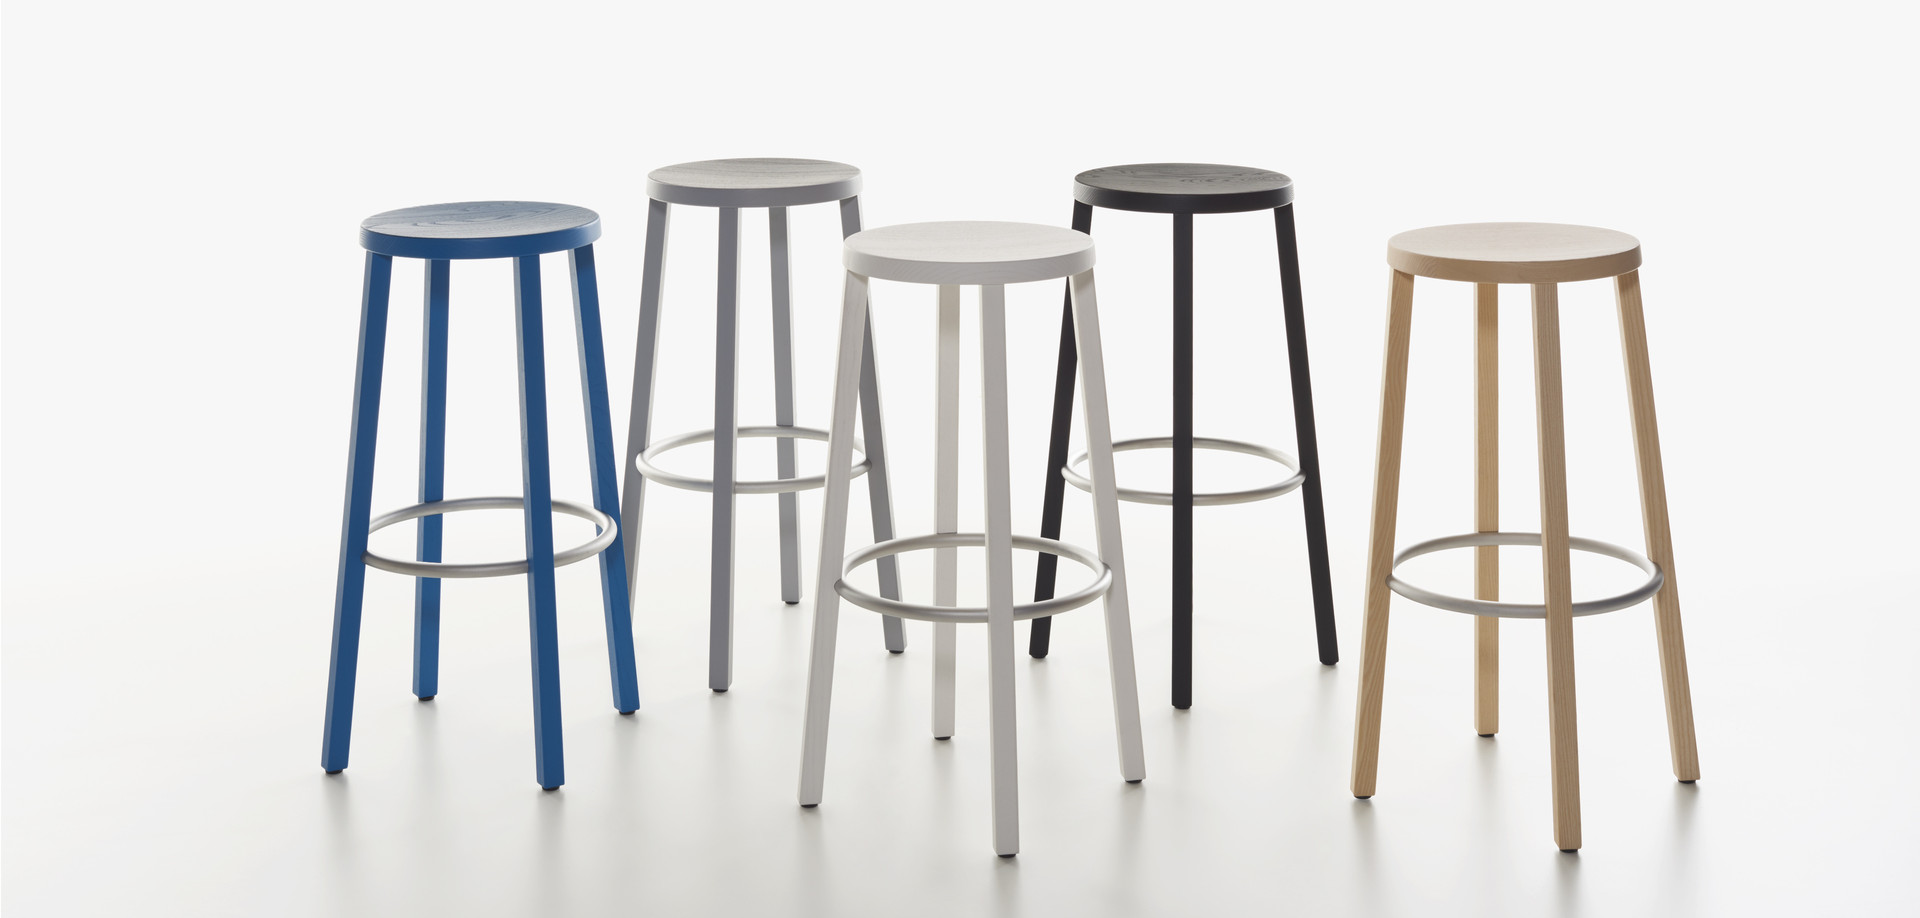 Plank - BLOCCO stool in the colors ash natural, black, grey, white and blue.